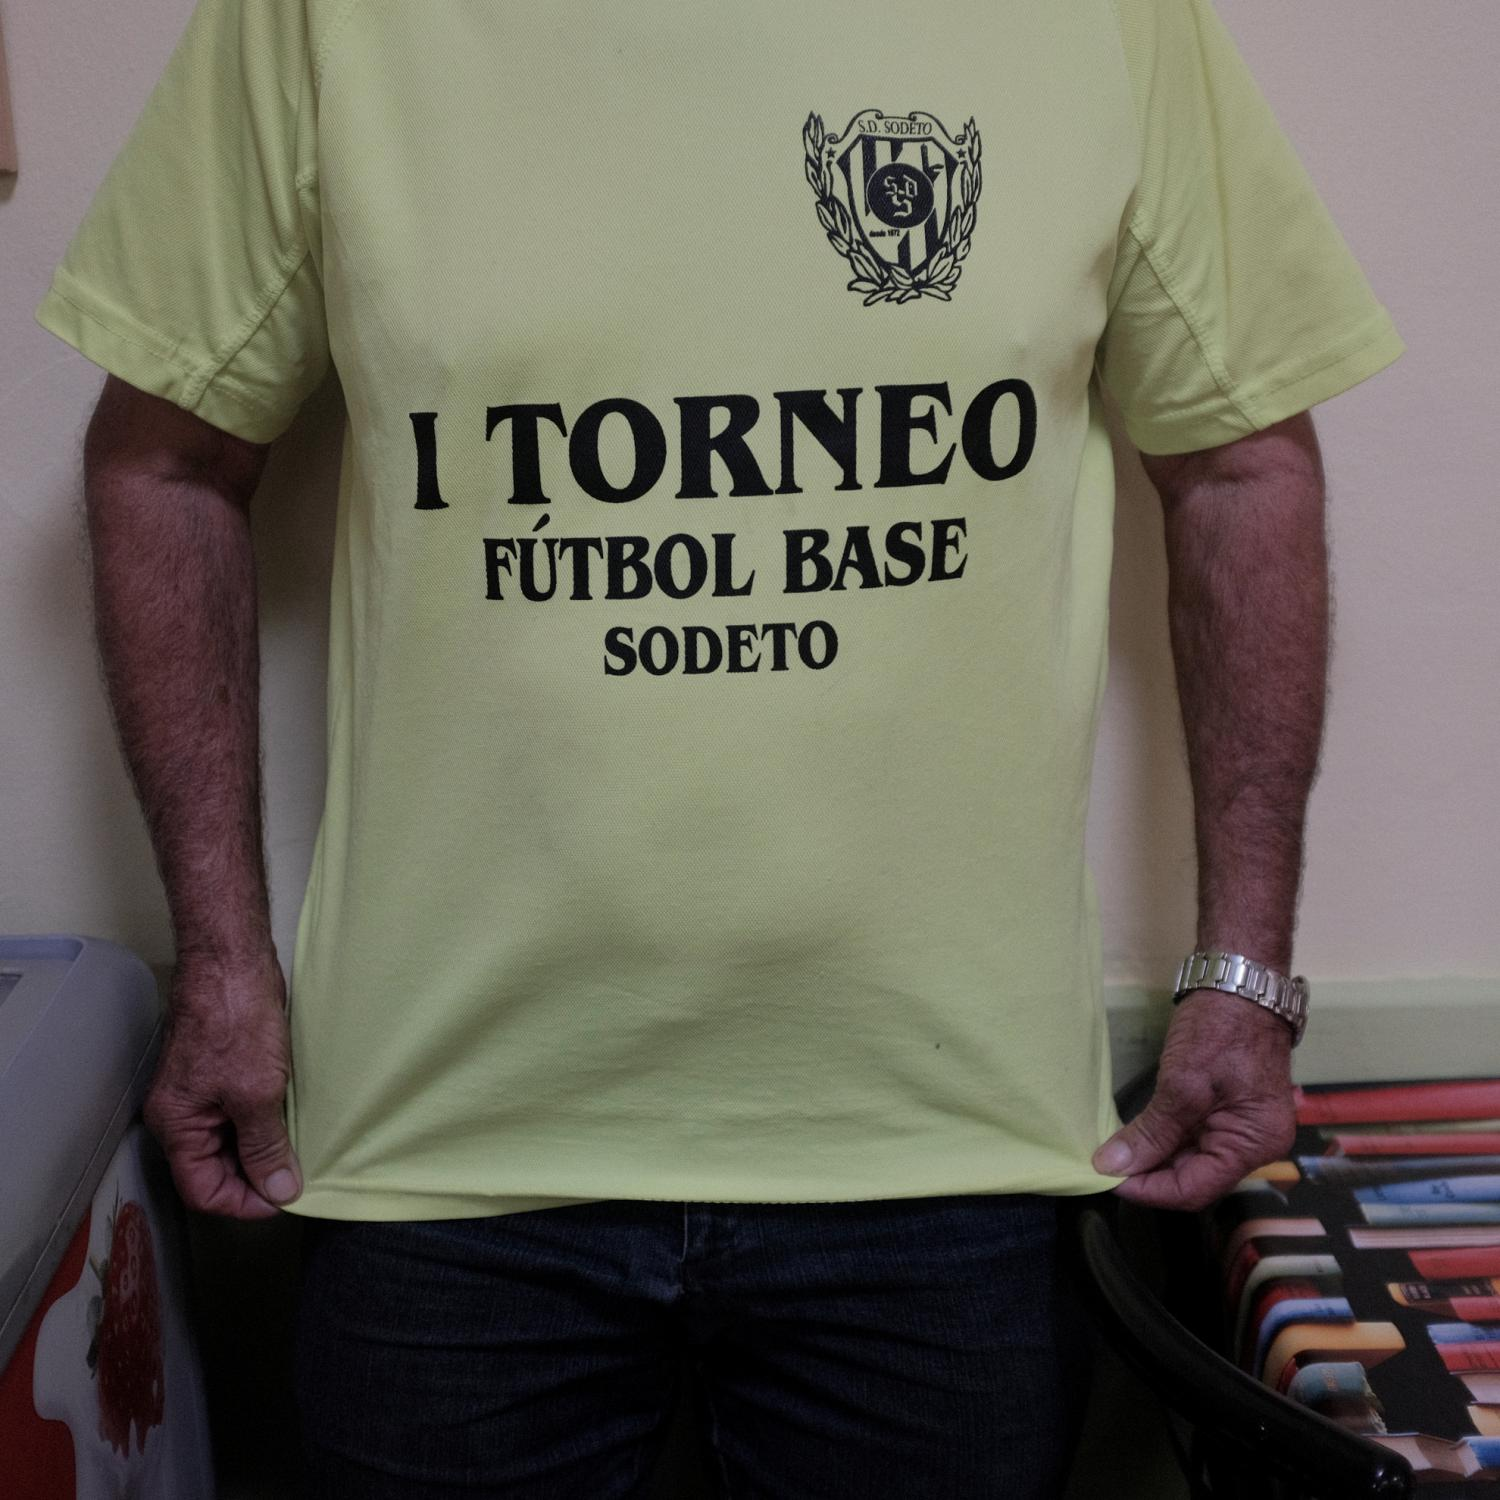 A retired farmer of Sodeto (Huesca), a settleds spot of no more than 200 inhabitants, showing a T-shirt of a football tournament. After the Spanish civil war in 1936, under Francisco Franco´s dictatorship, an agriculture reform was enforced leading to the building of more than 300 new towns all around Spain. This towns were populated with people coming from other rural impoverished areas but most of them are in high risk of disappearing because the new generations are moving to cities and abandoning these areas. Copyright: Spanish photojournalist Andoni Lubaki.